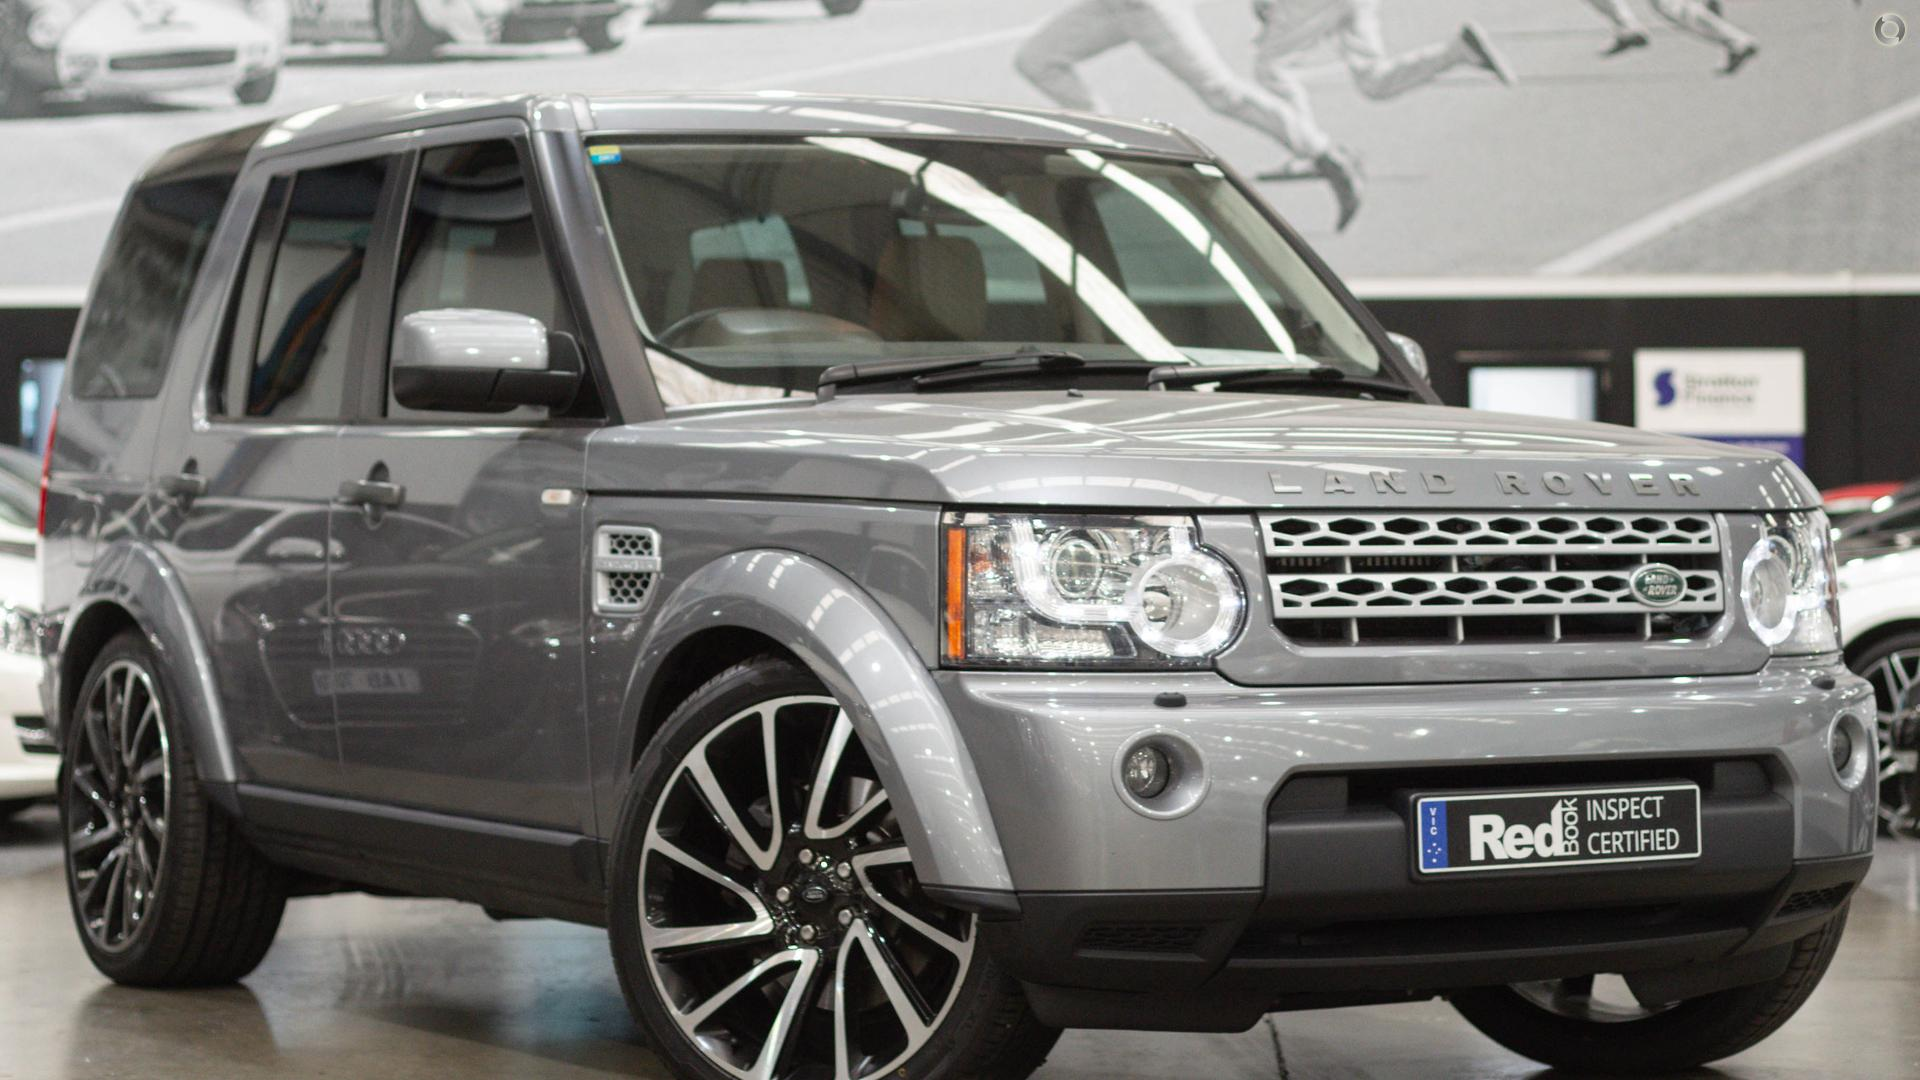 2012 Land Rover Discovery 4 Series 4